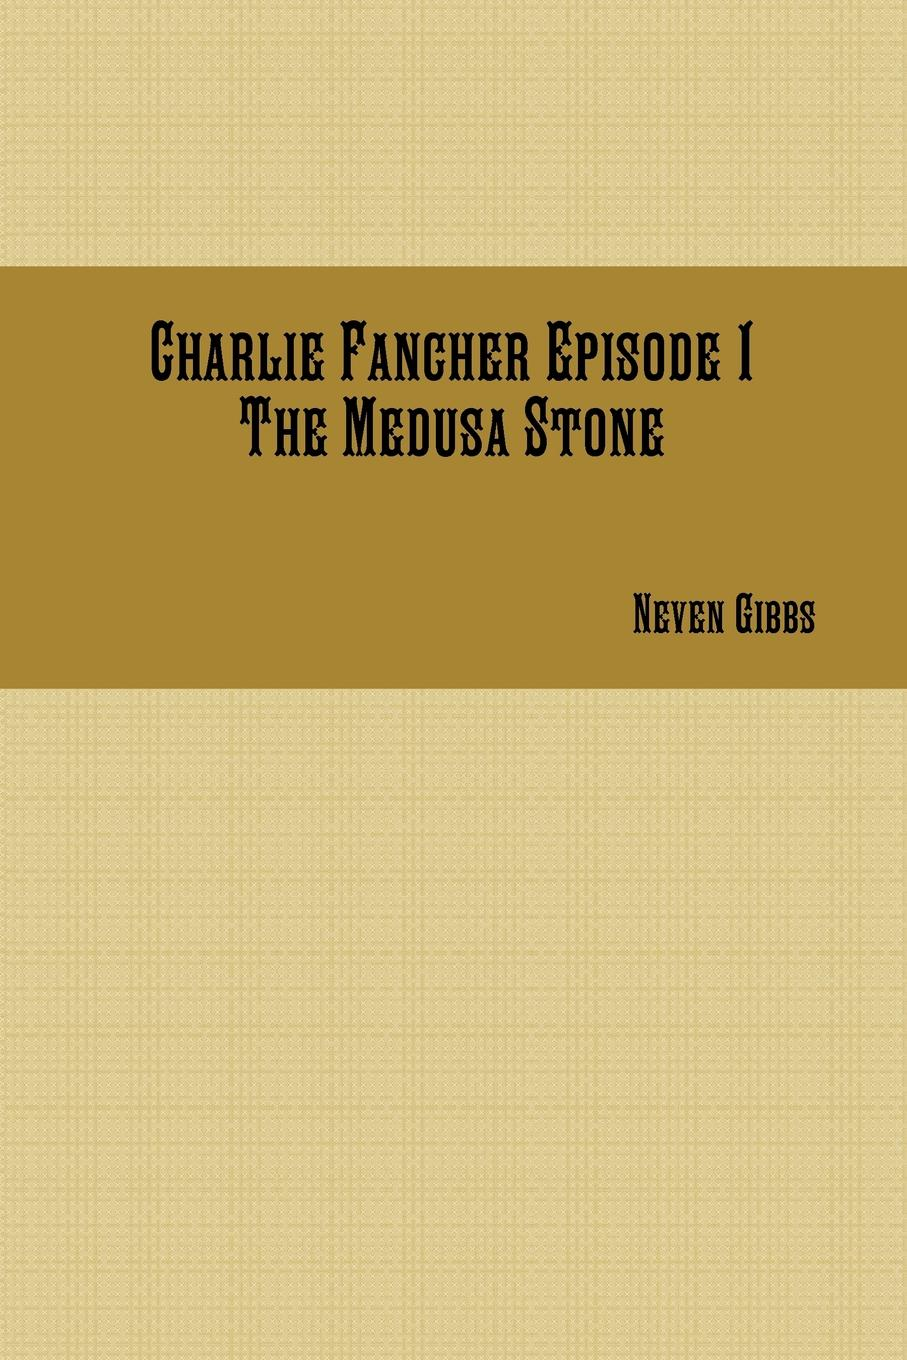 Neven Gibbs Charlie Fancher Episode 1 The Medusa Stone charlie small the mummy s tomb